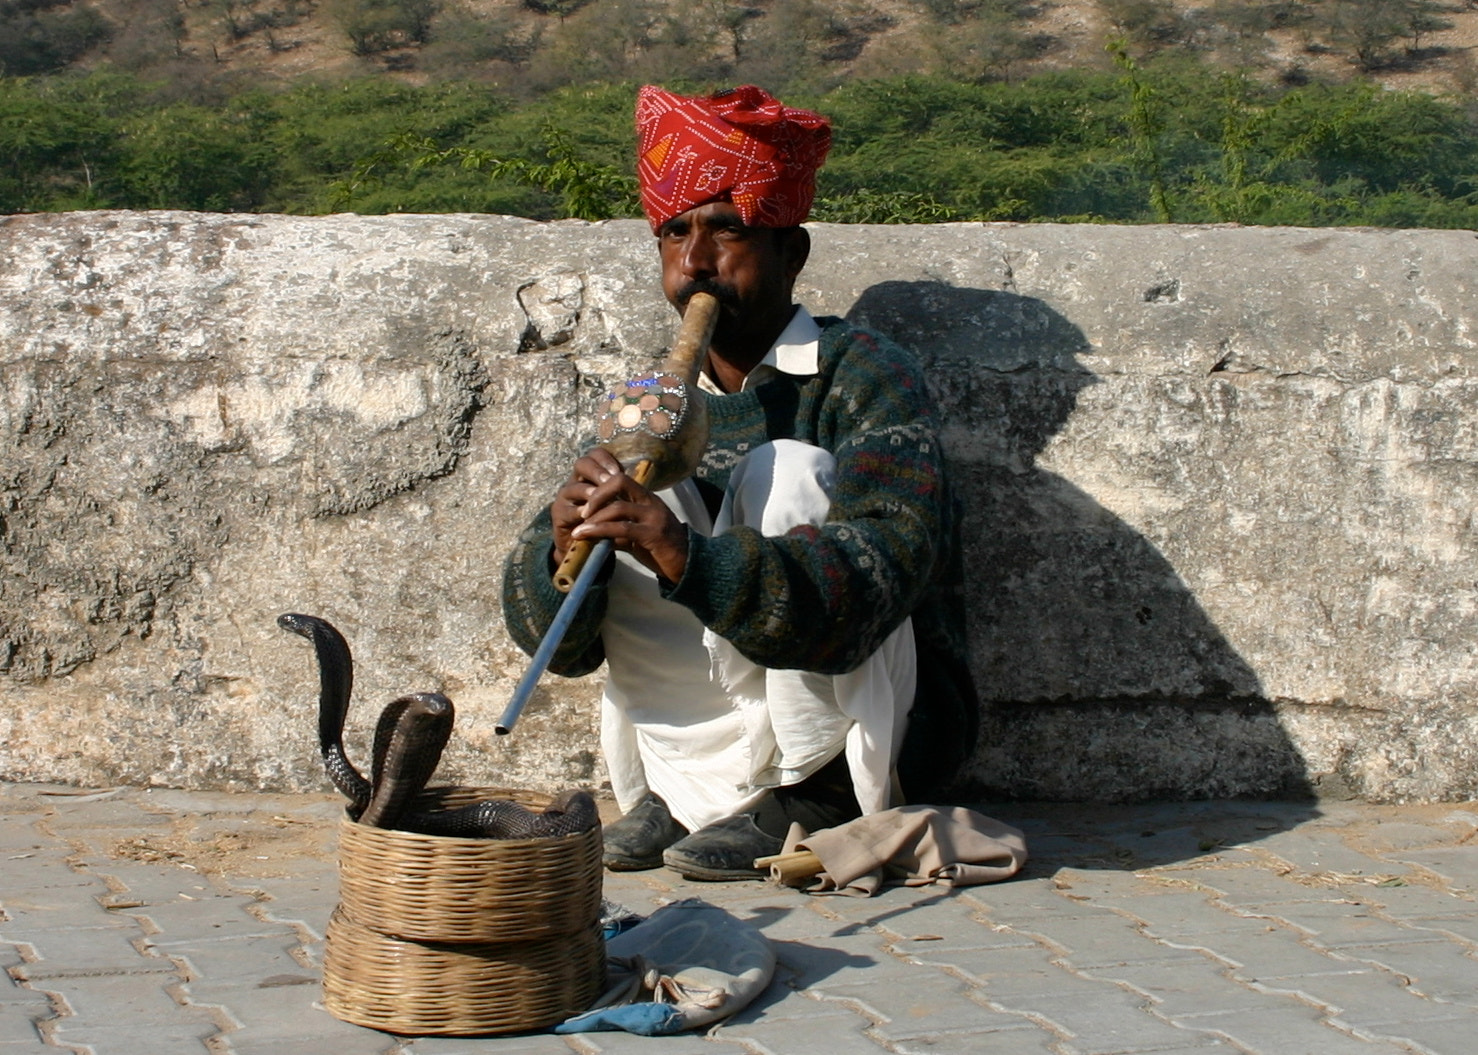 Photograph Snake charmer by Andres Aboumrad on 500px